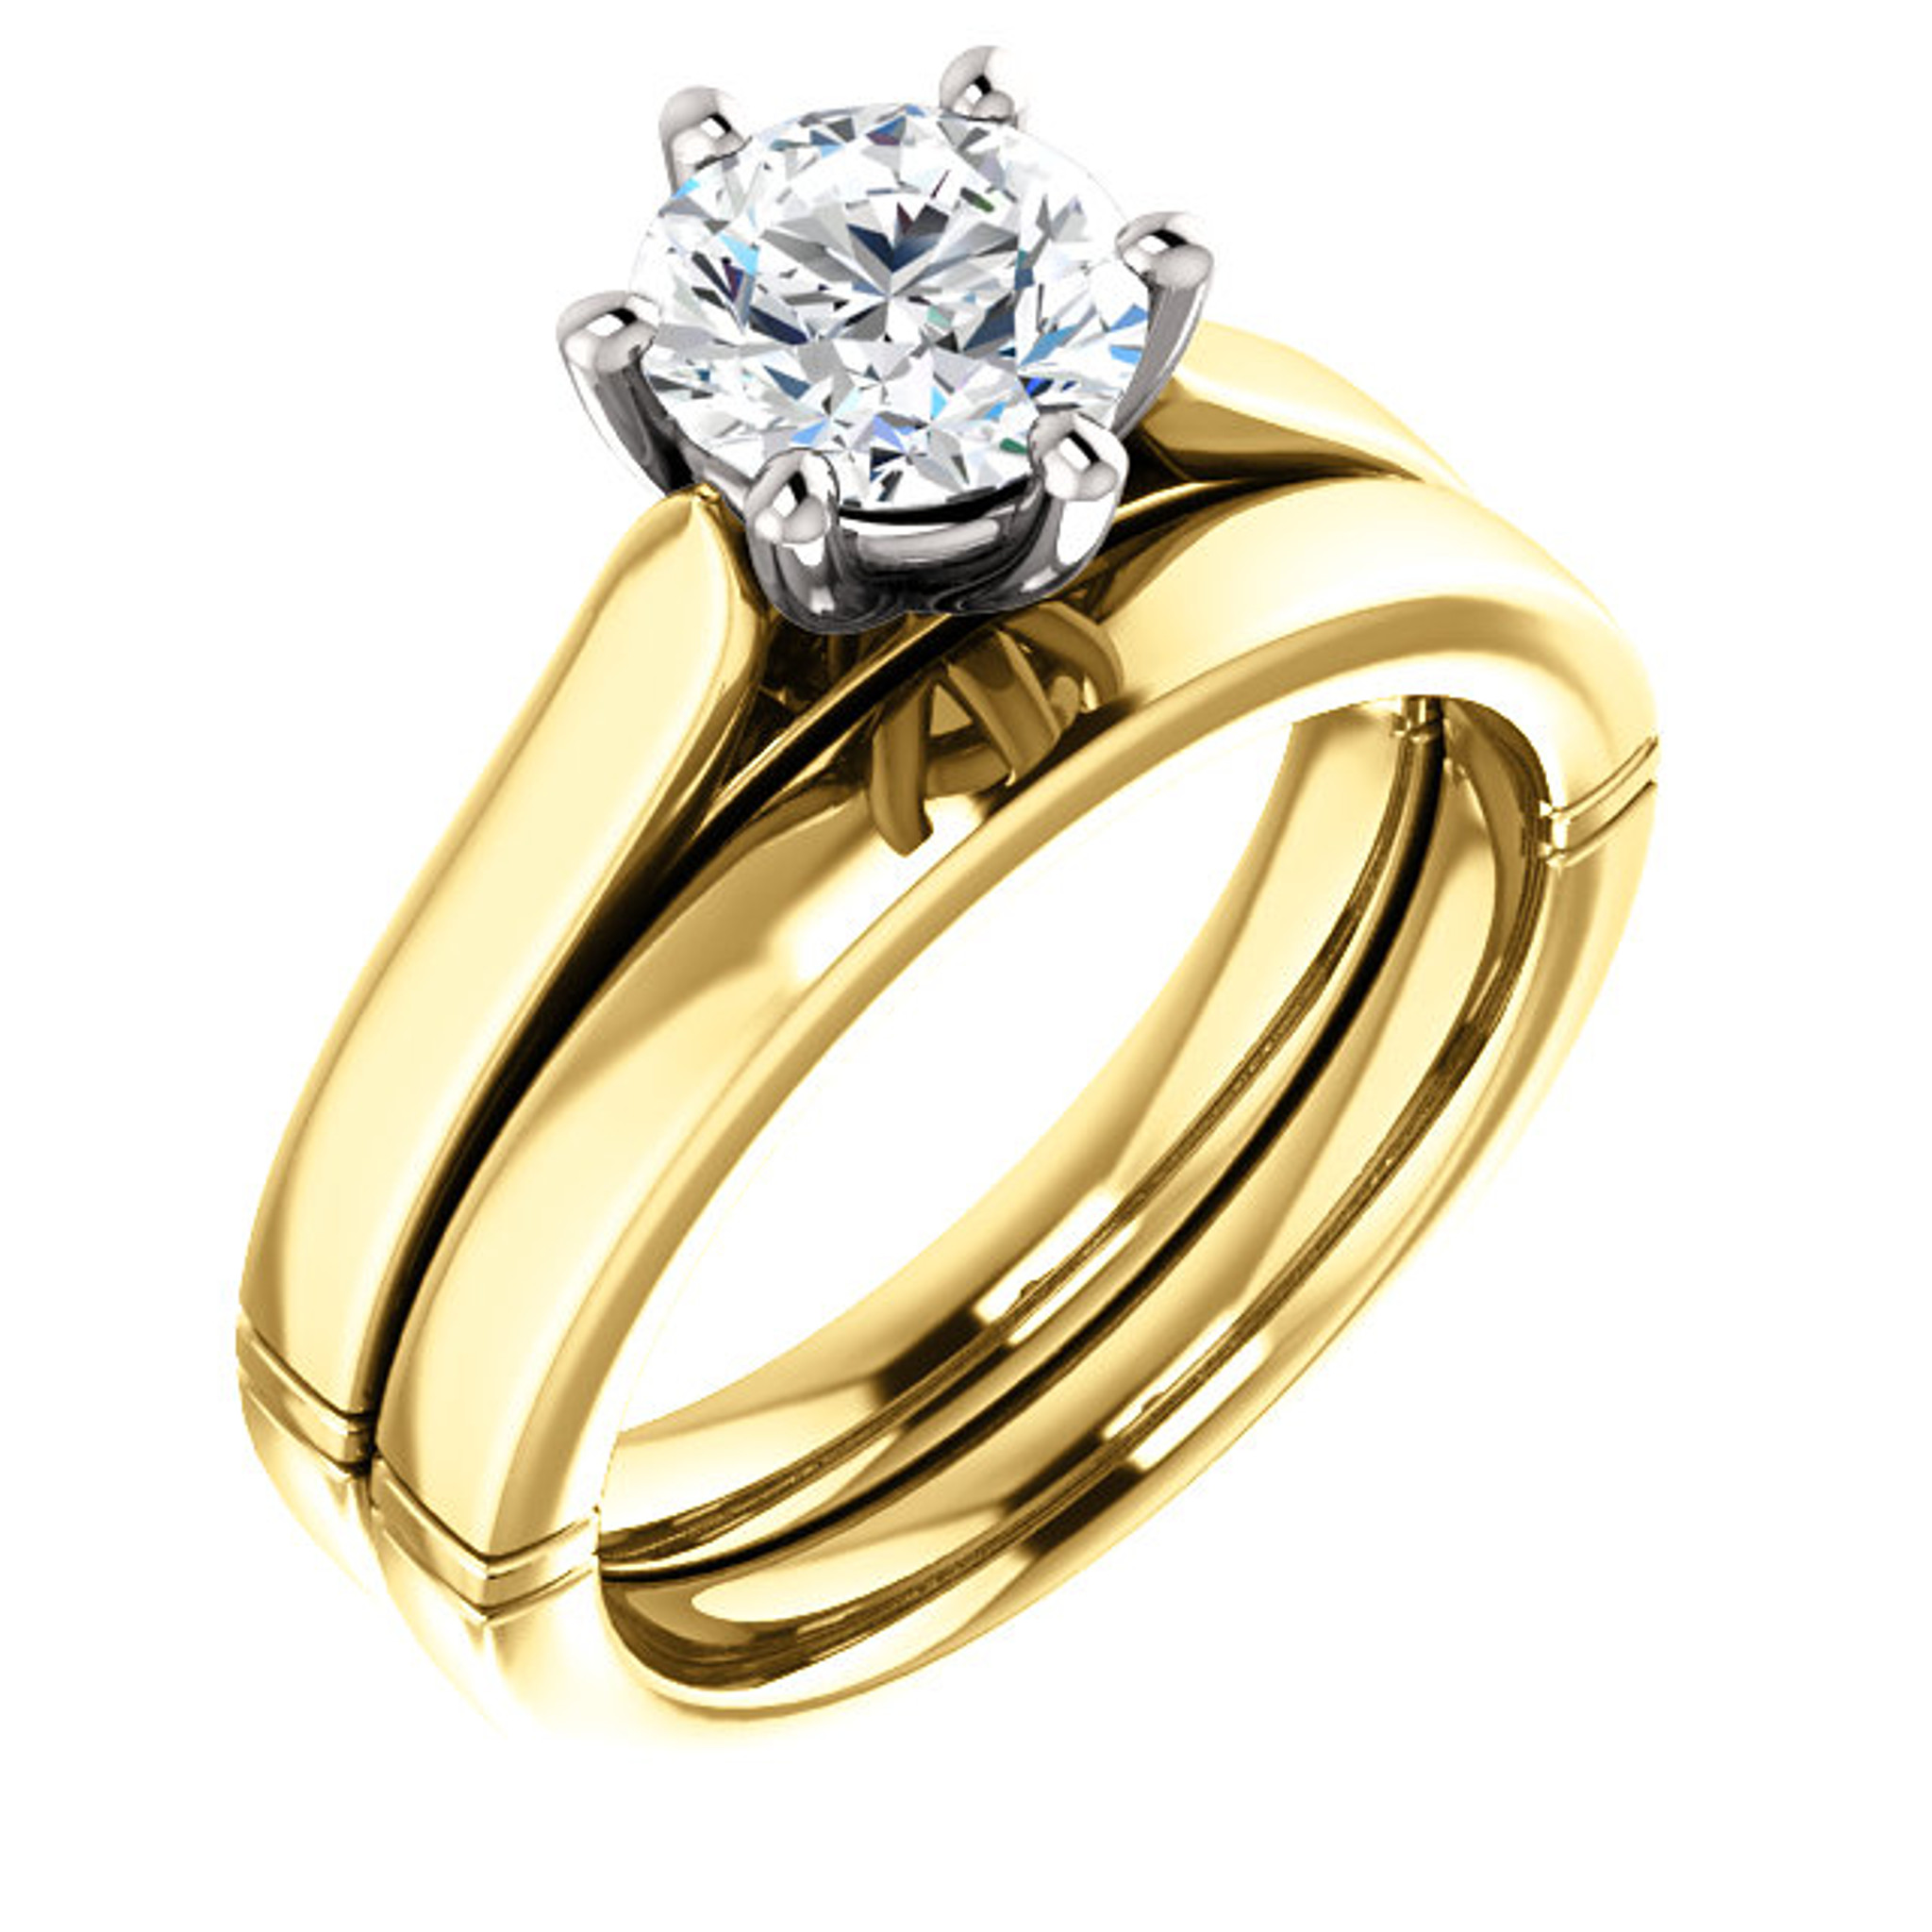 25acfbb583fe8c Hand Cut & Polished 1 Carat Round Cubic Zirconia Solitaire Engagement Ring  & Matching ...